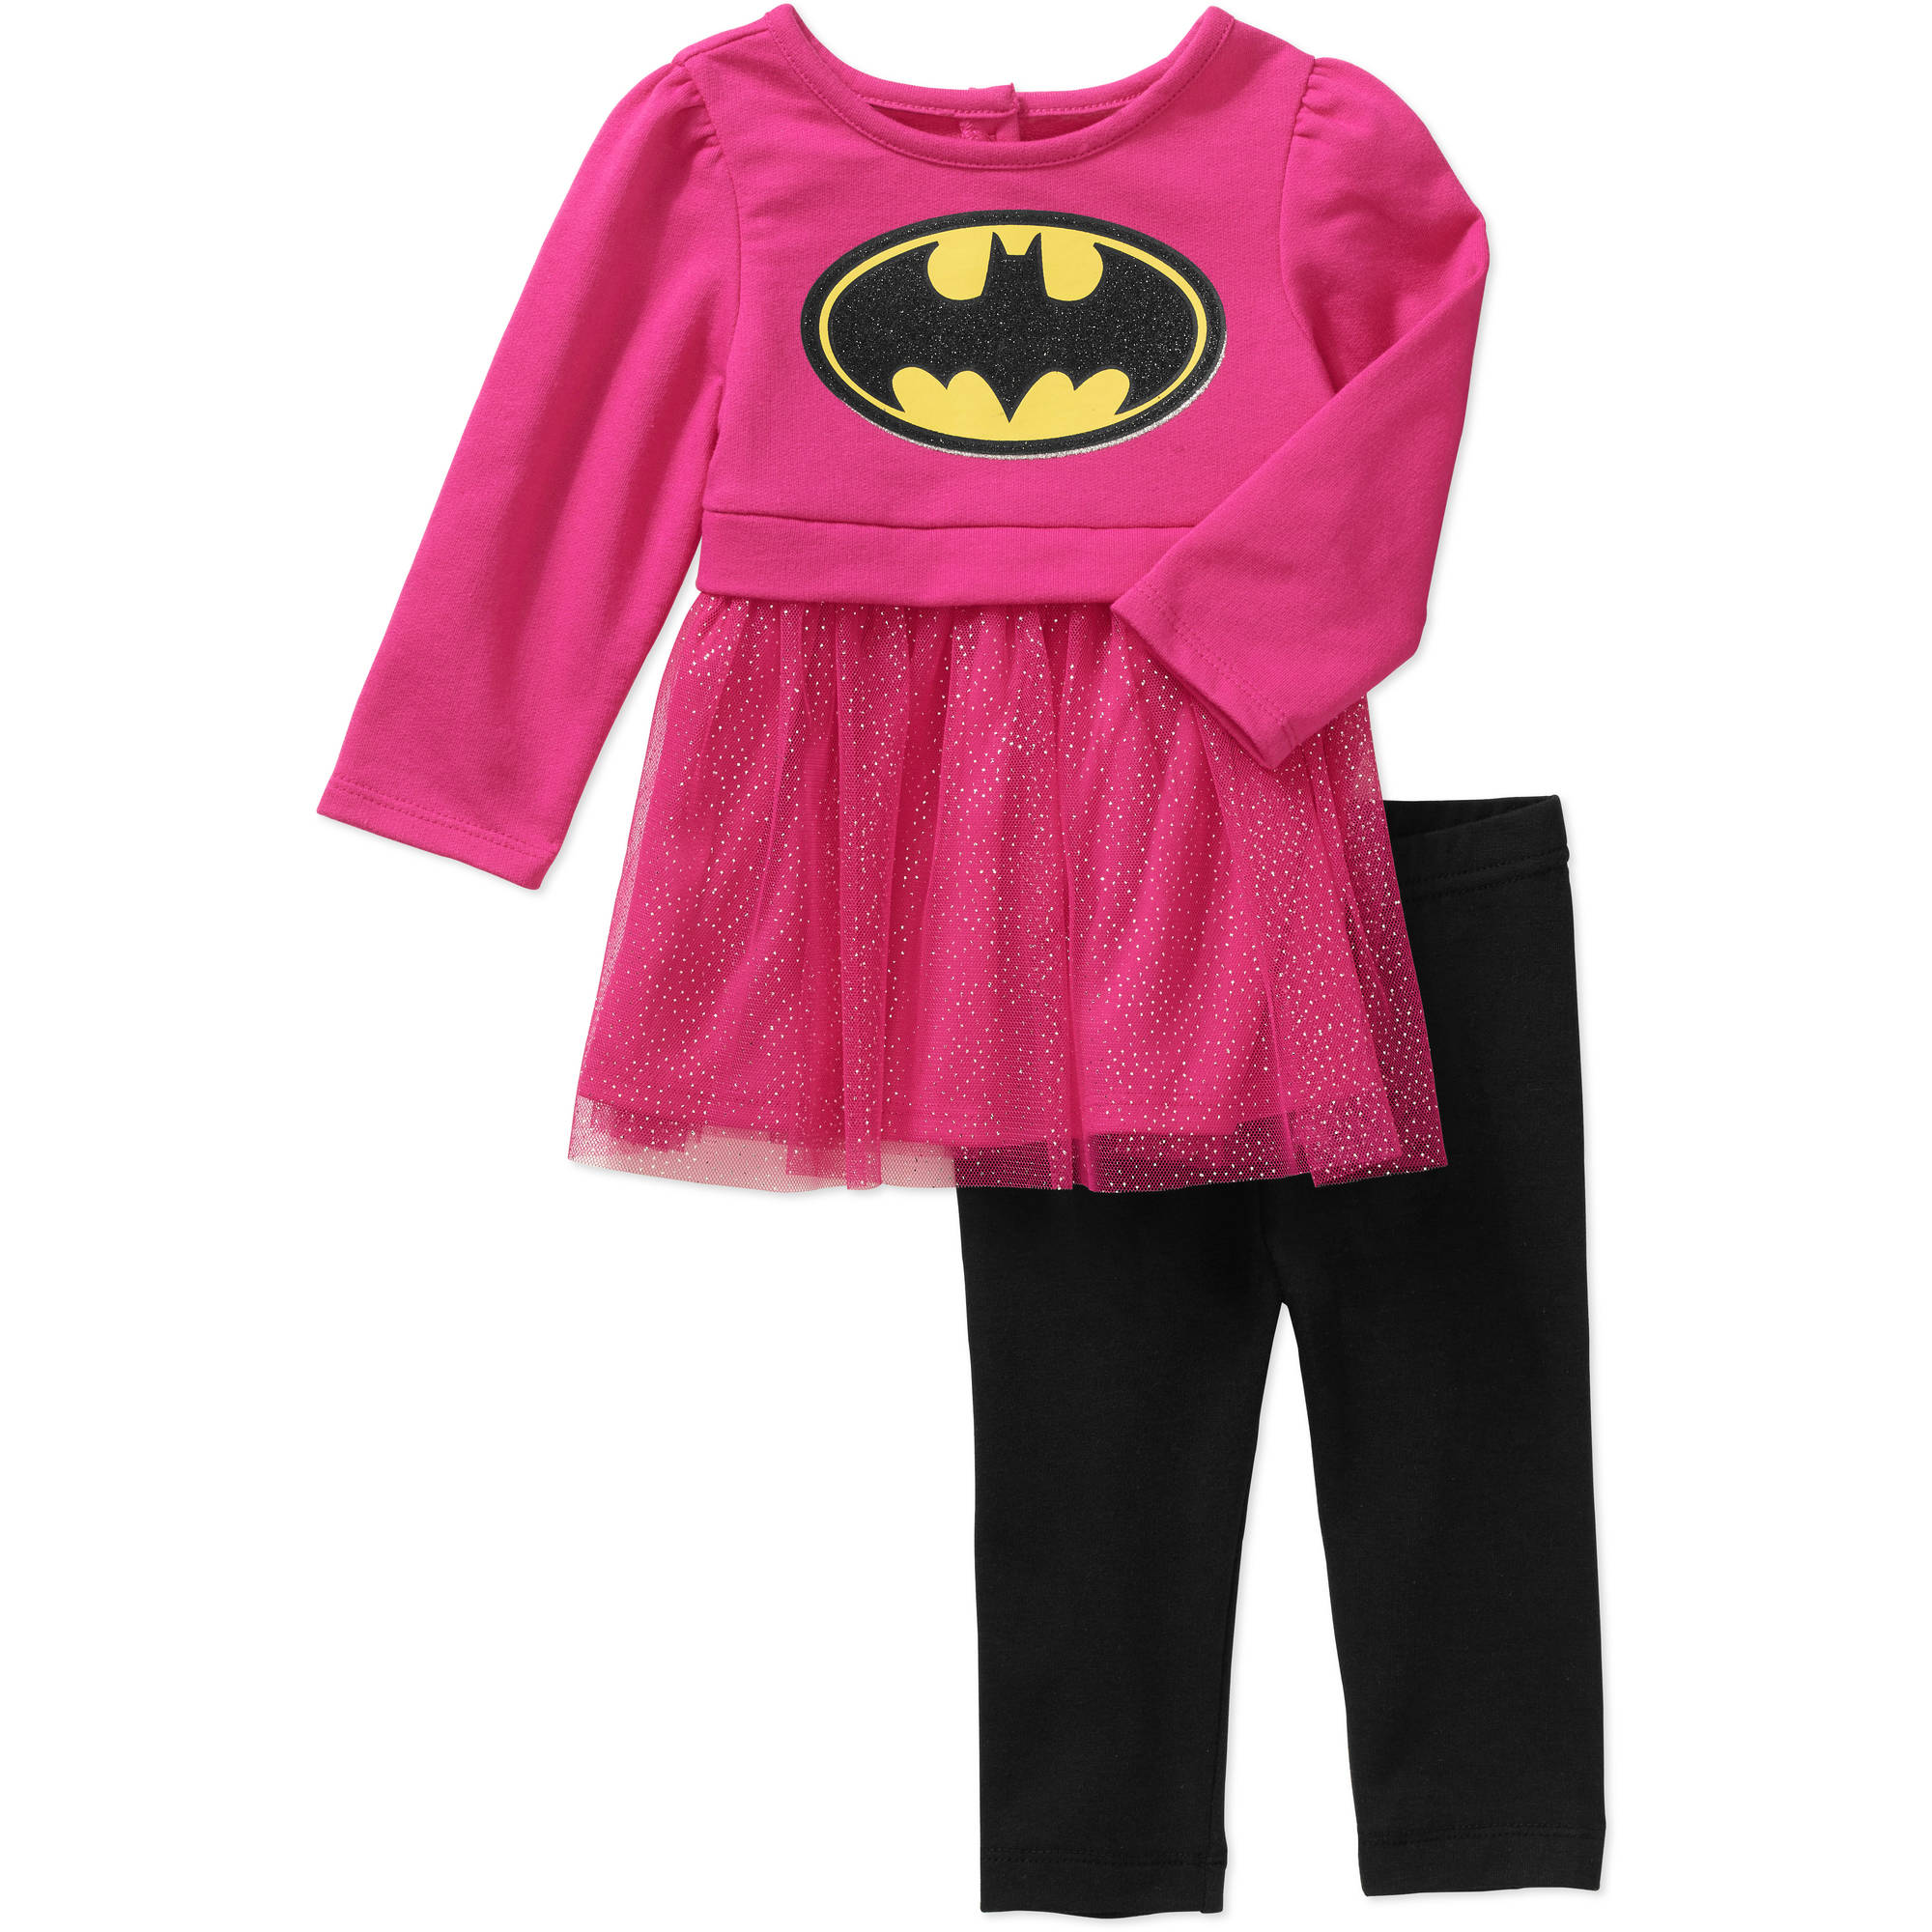 Batman Newborn Baby Girls' Skirted Tunic and Leggings Outfit Set